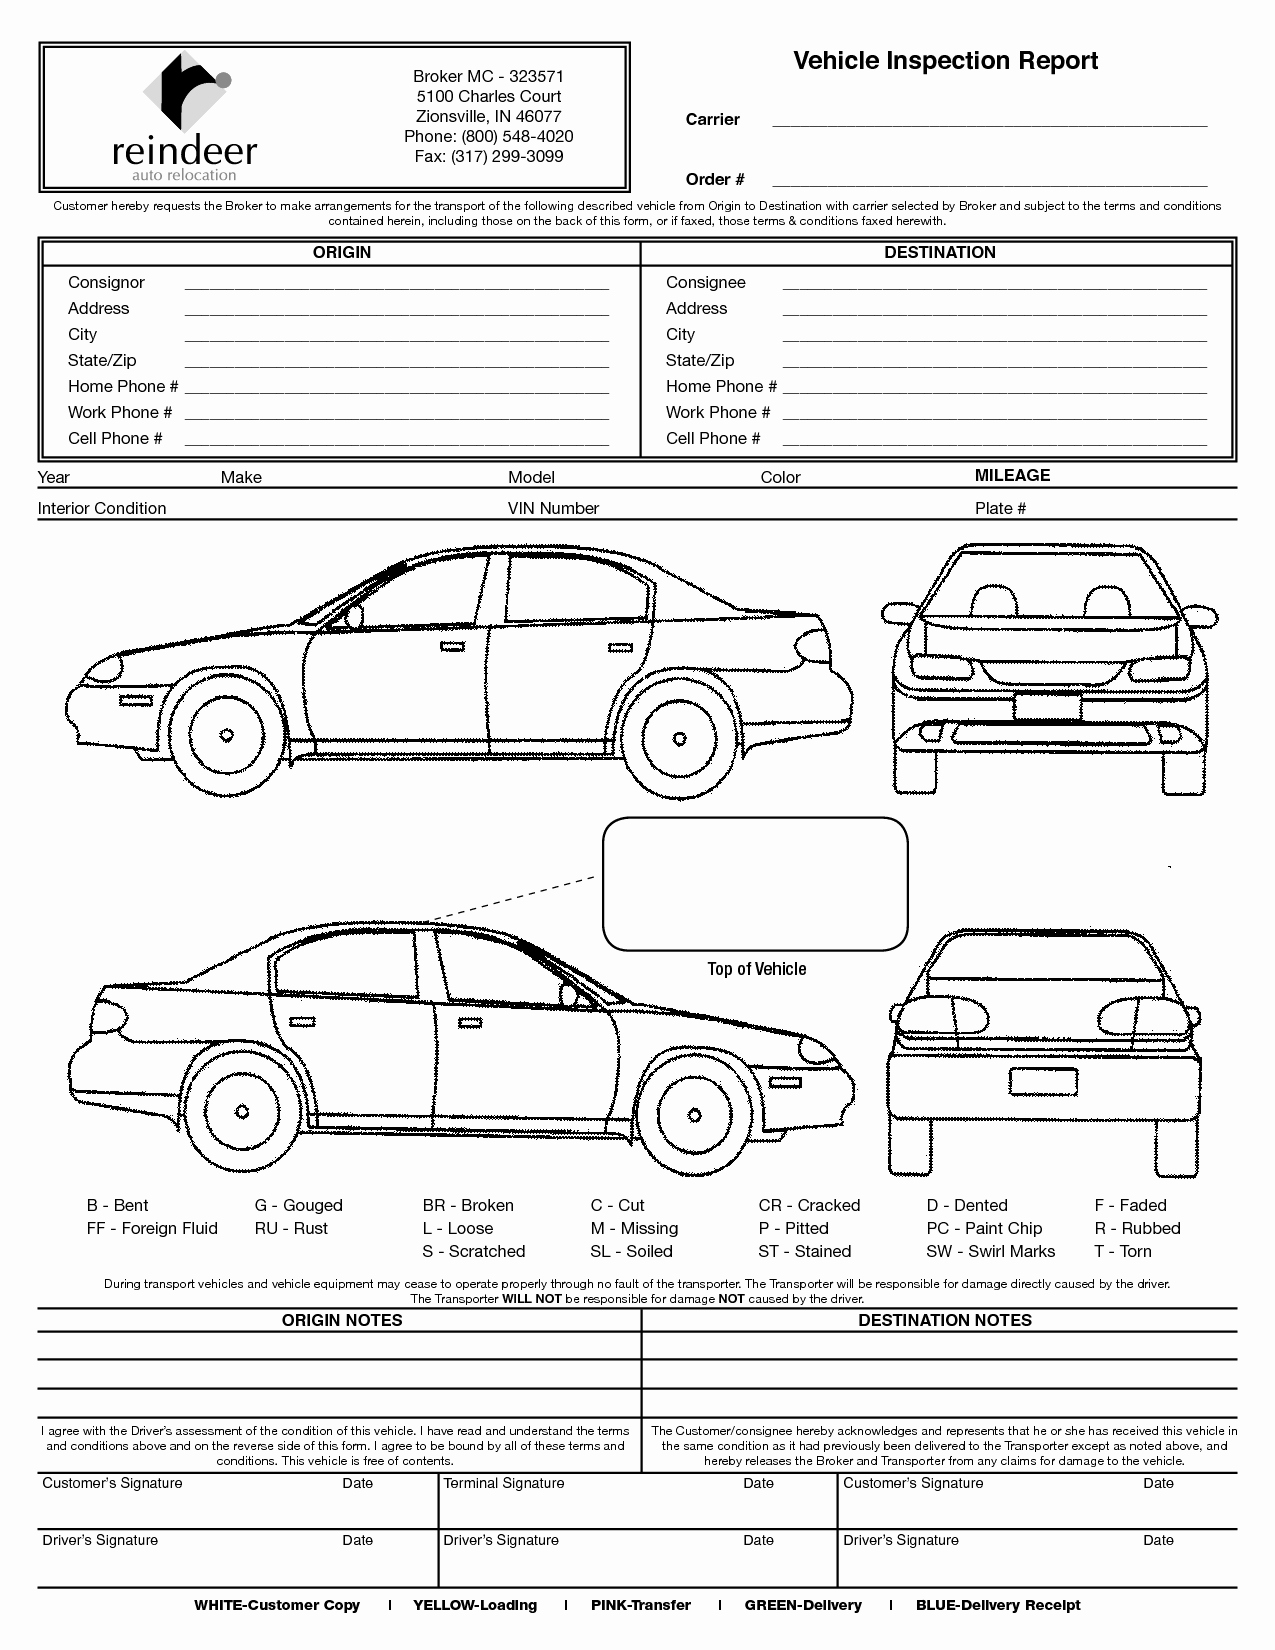 Vehicle Inspection Report Template Awesome Vehicle Check In Sheet to Pin On Pinterest